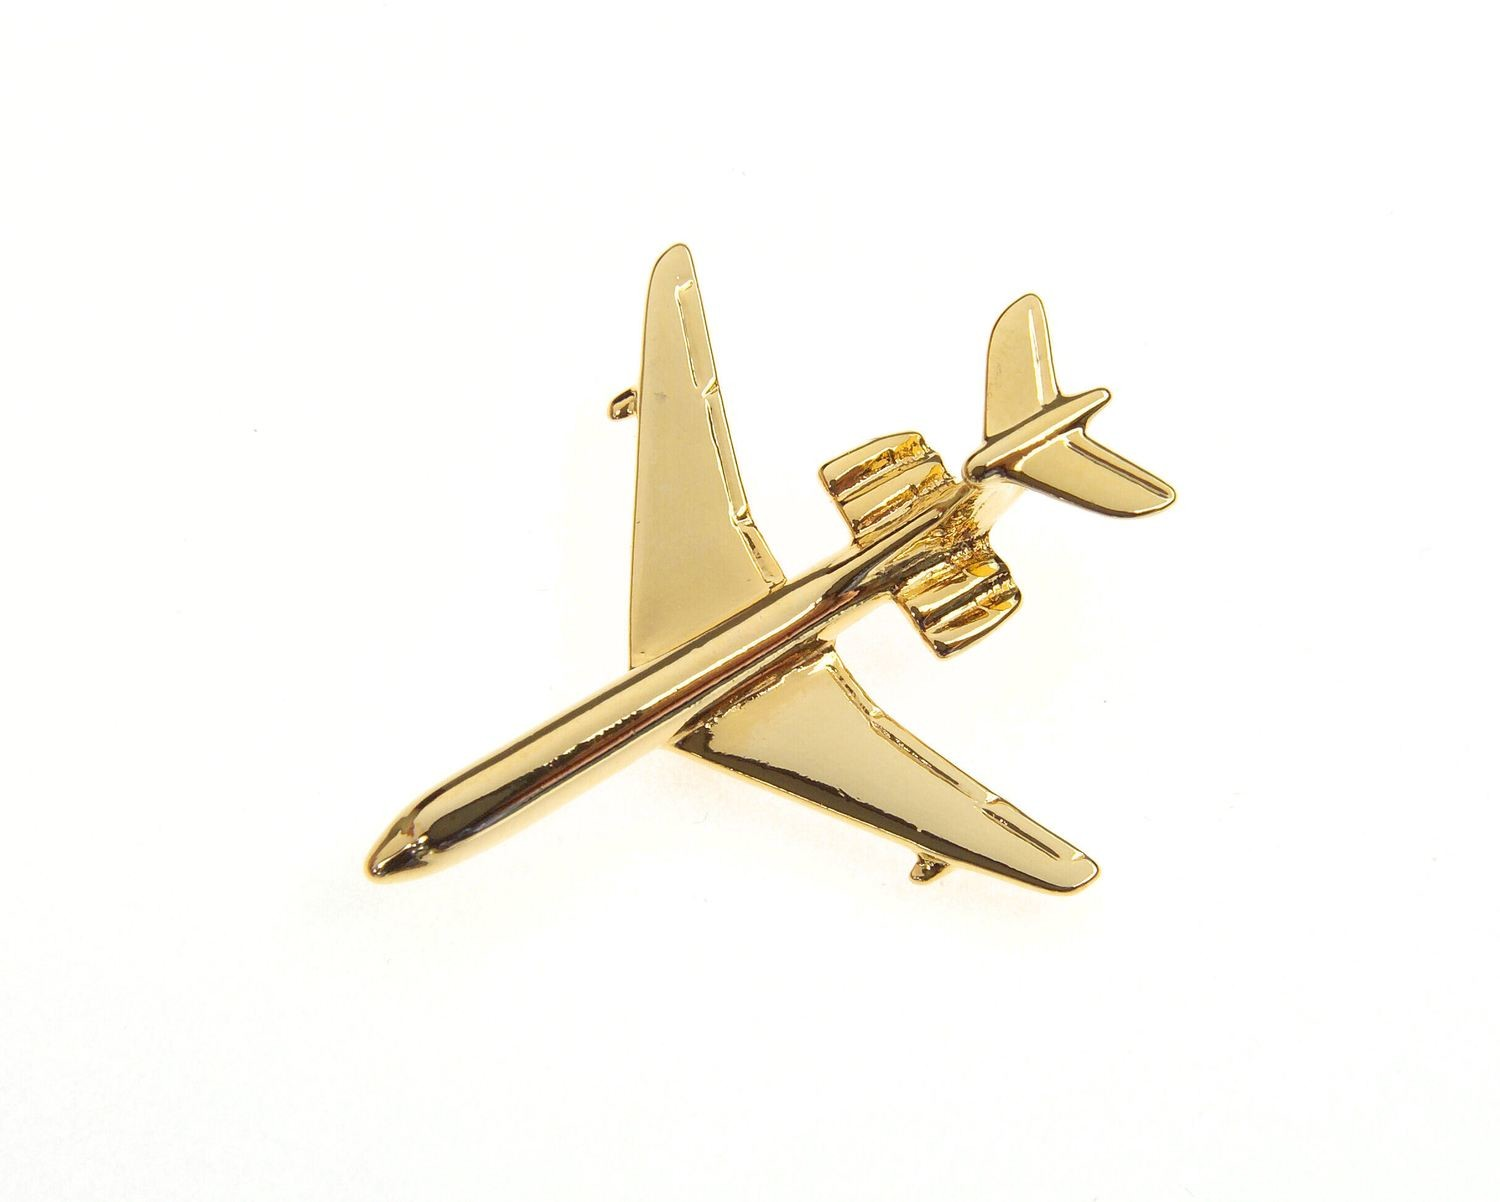 VC10 Tanker Gold Plated Tie / Lapel Pin